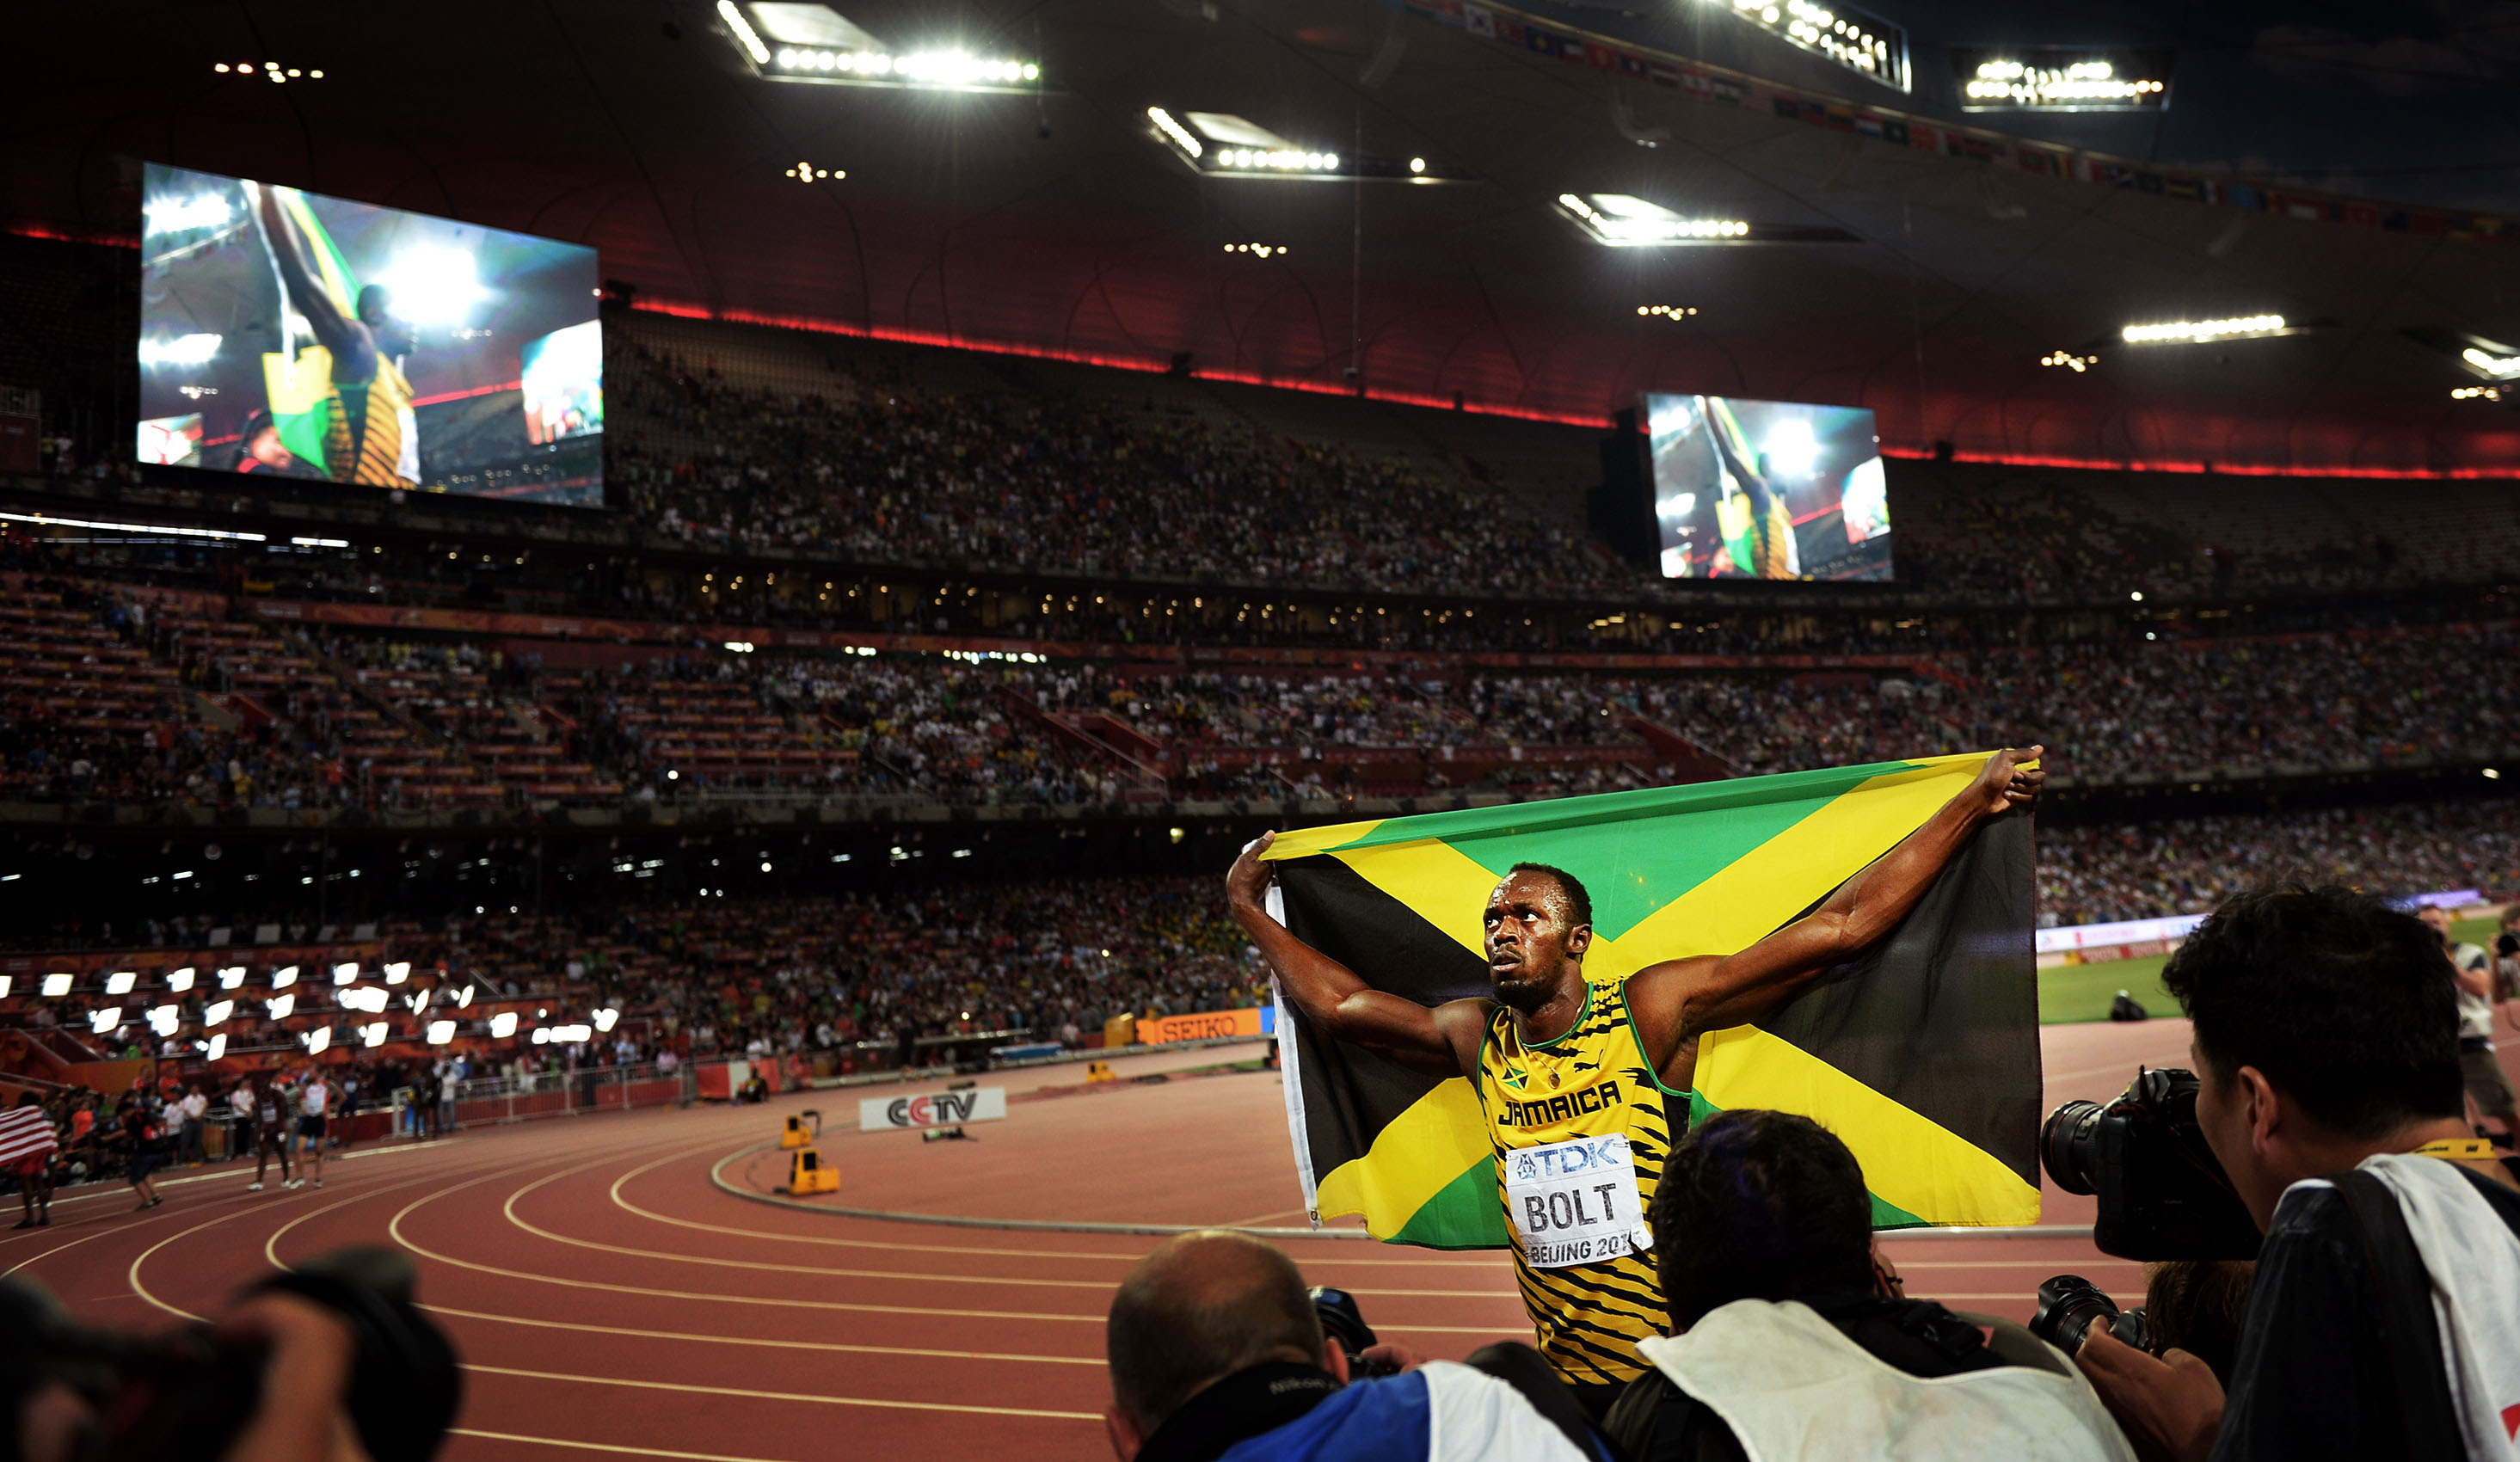 Usain adds the 200m gold to complete the sprint double